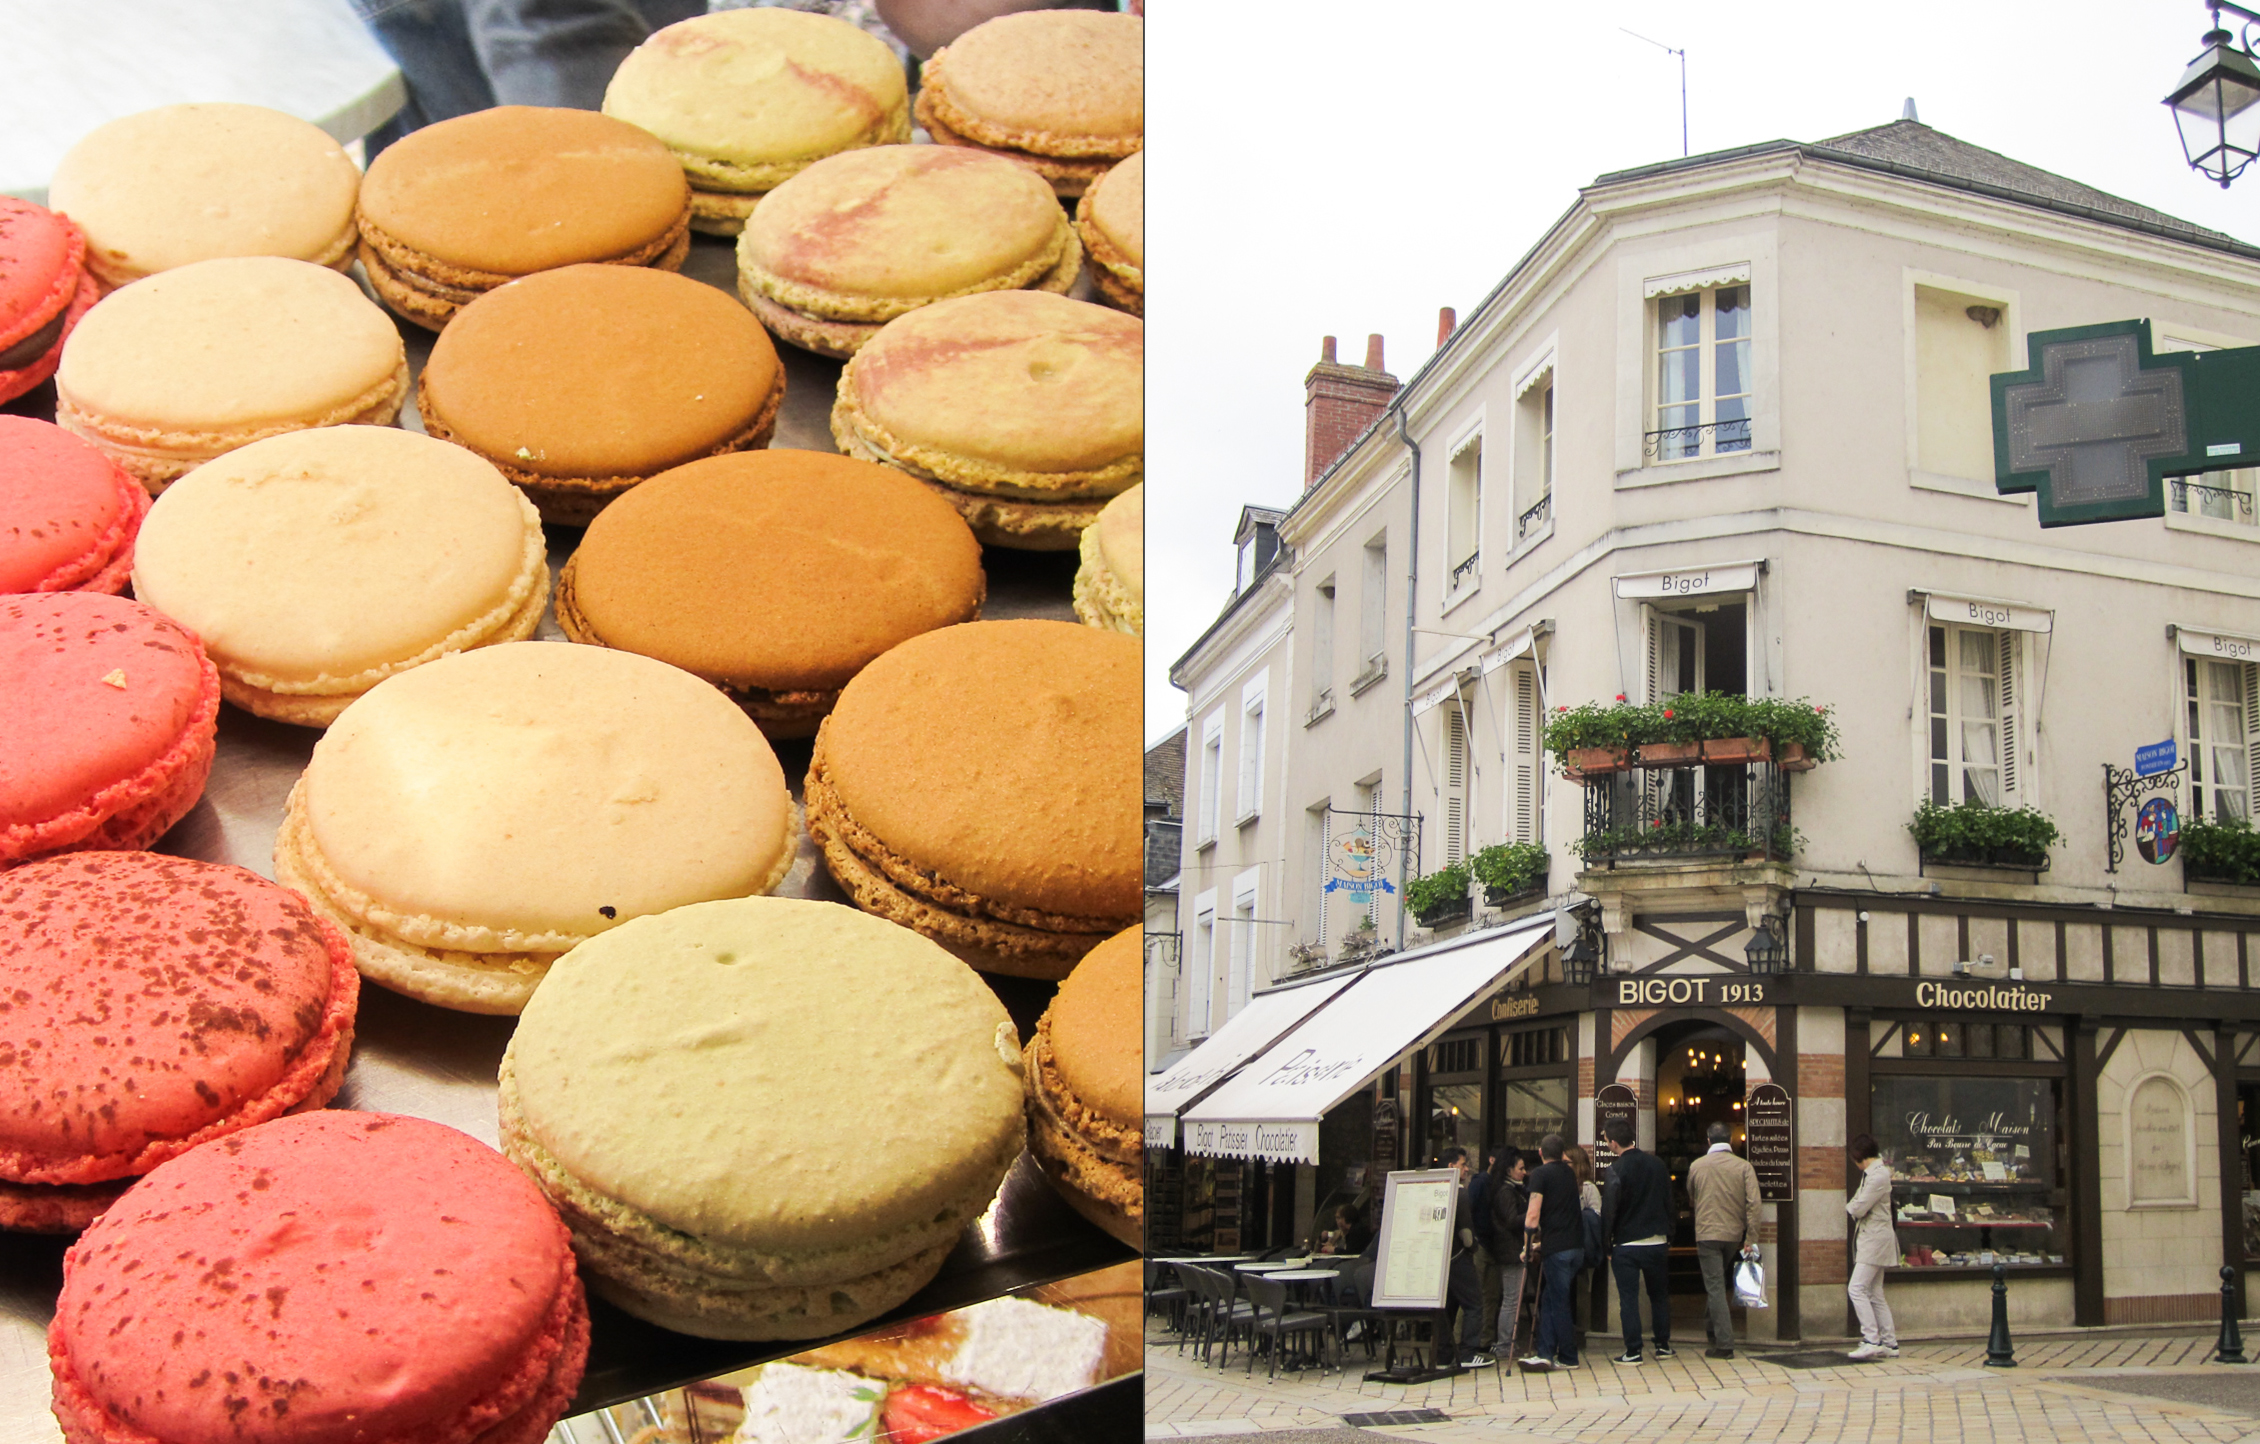 Macarons from Patisserie Bigot in Amboise, France